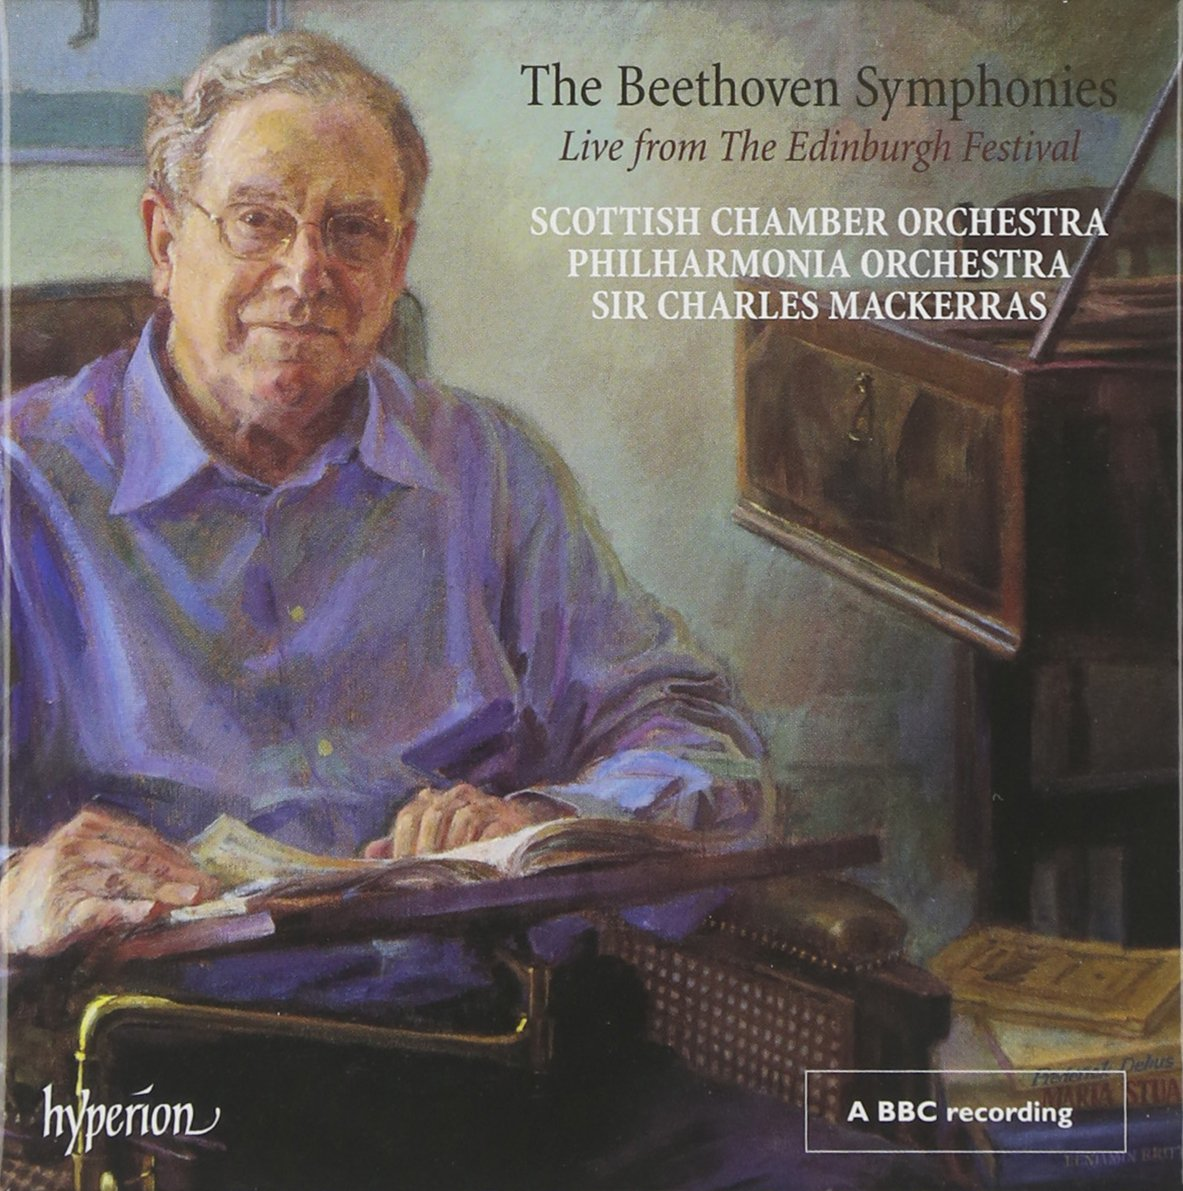 The Beethoven Symphonies Live from The Edinburgh Festival (Mackerras)